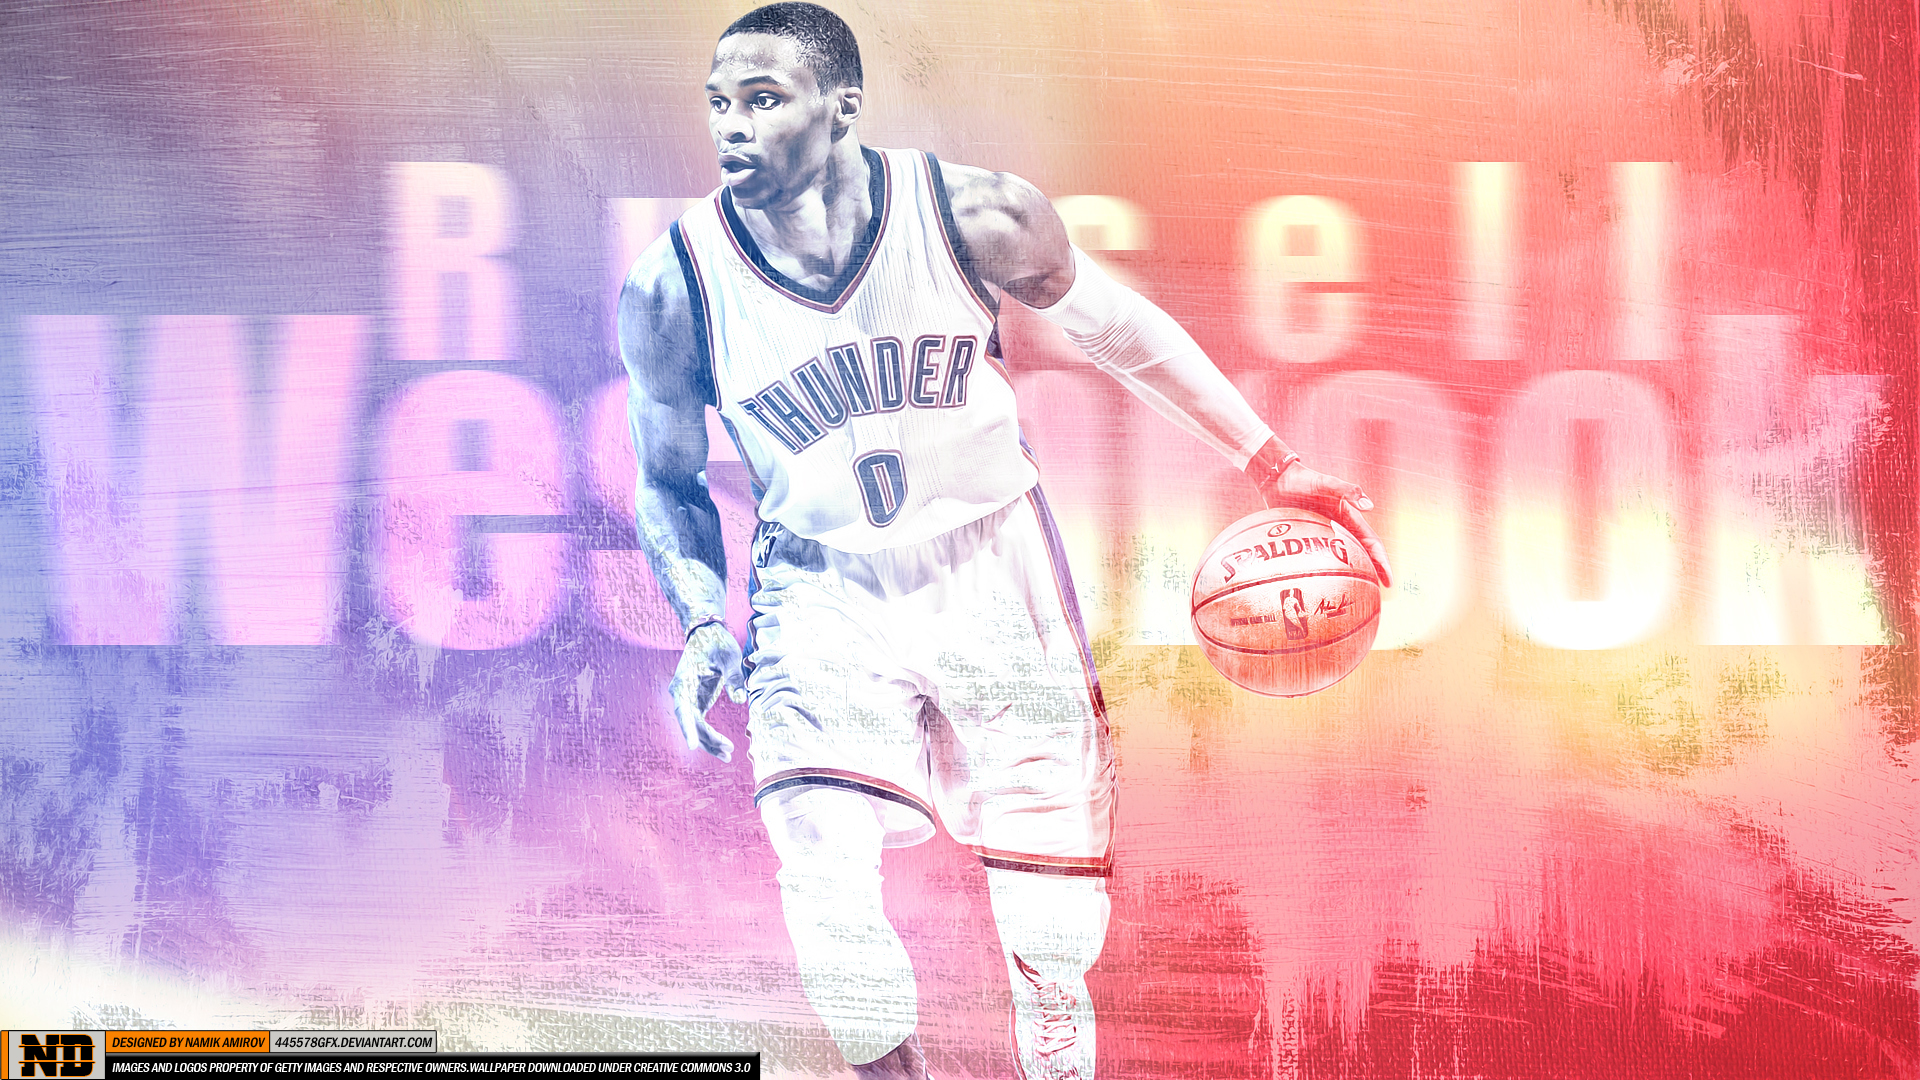 Pics of russell westbrook